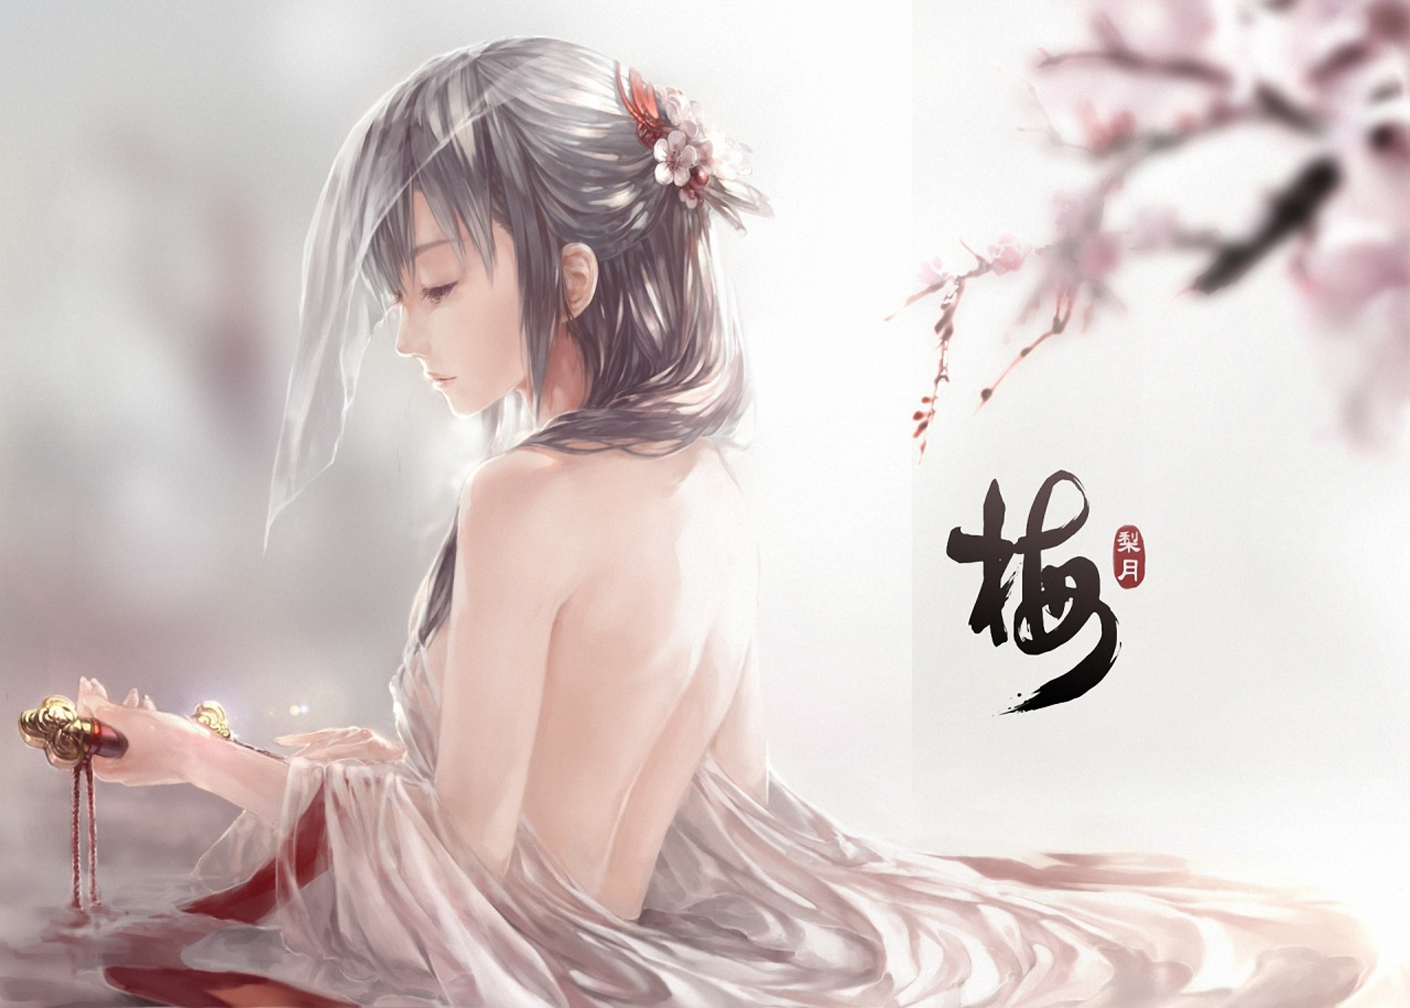 Beautiful Girl Sad Face Cherry Blossom Anime HD Wallpaper Desktop PC 1410x1008